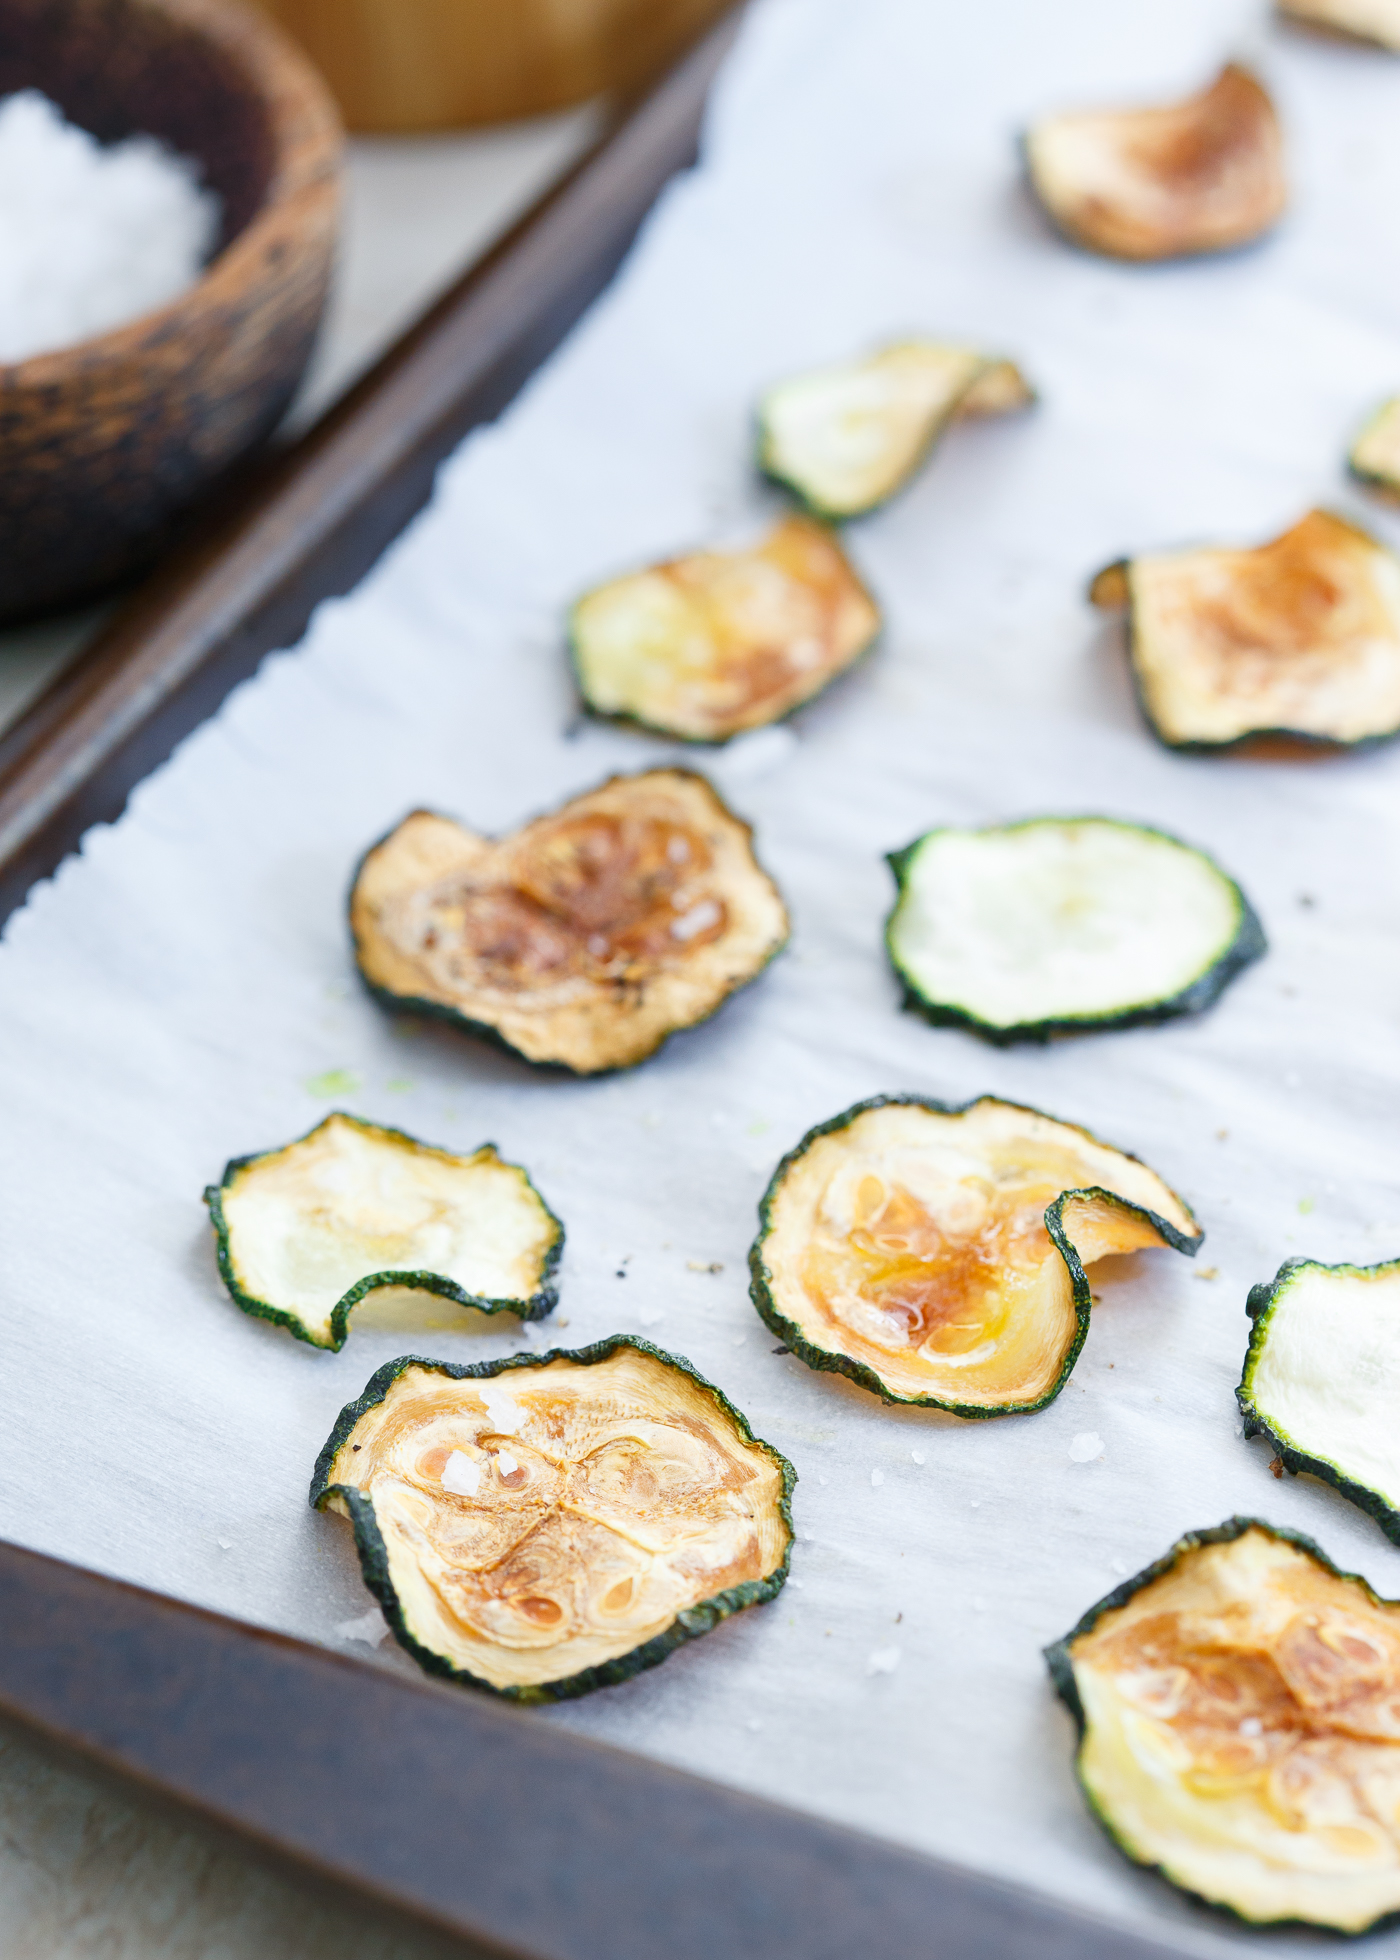 Salt & Pepper Baked Zucchini Chips recipe